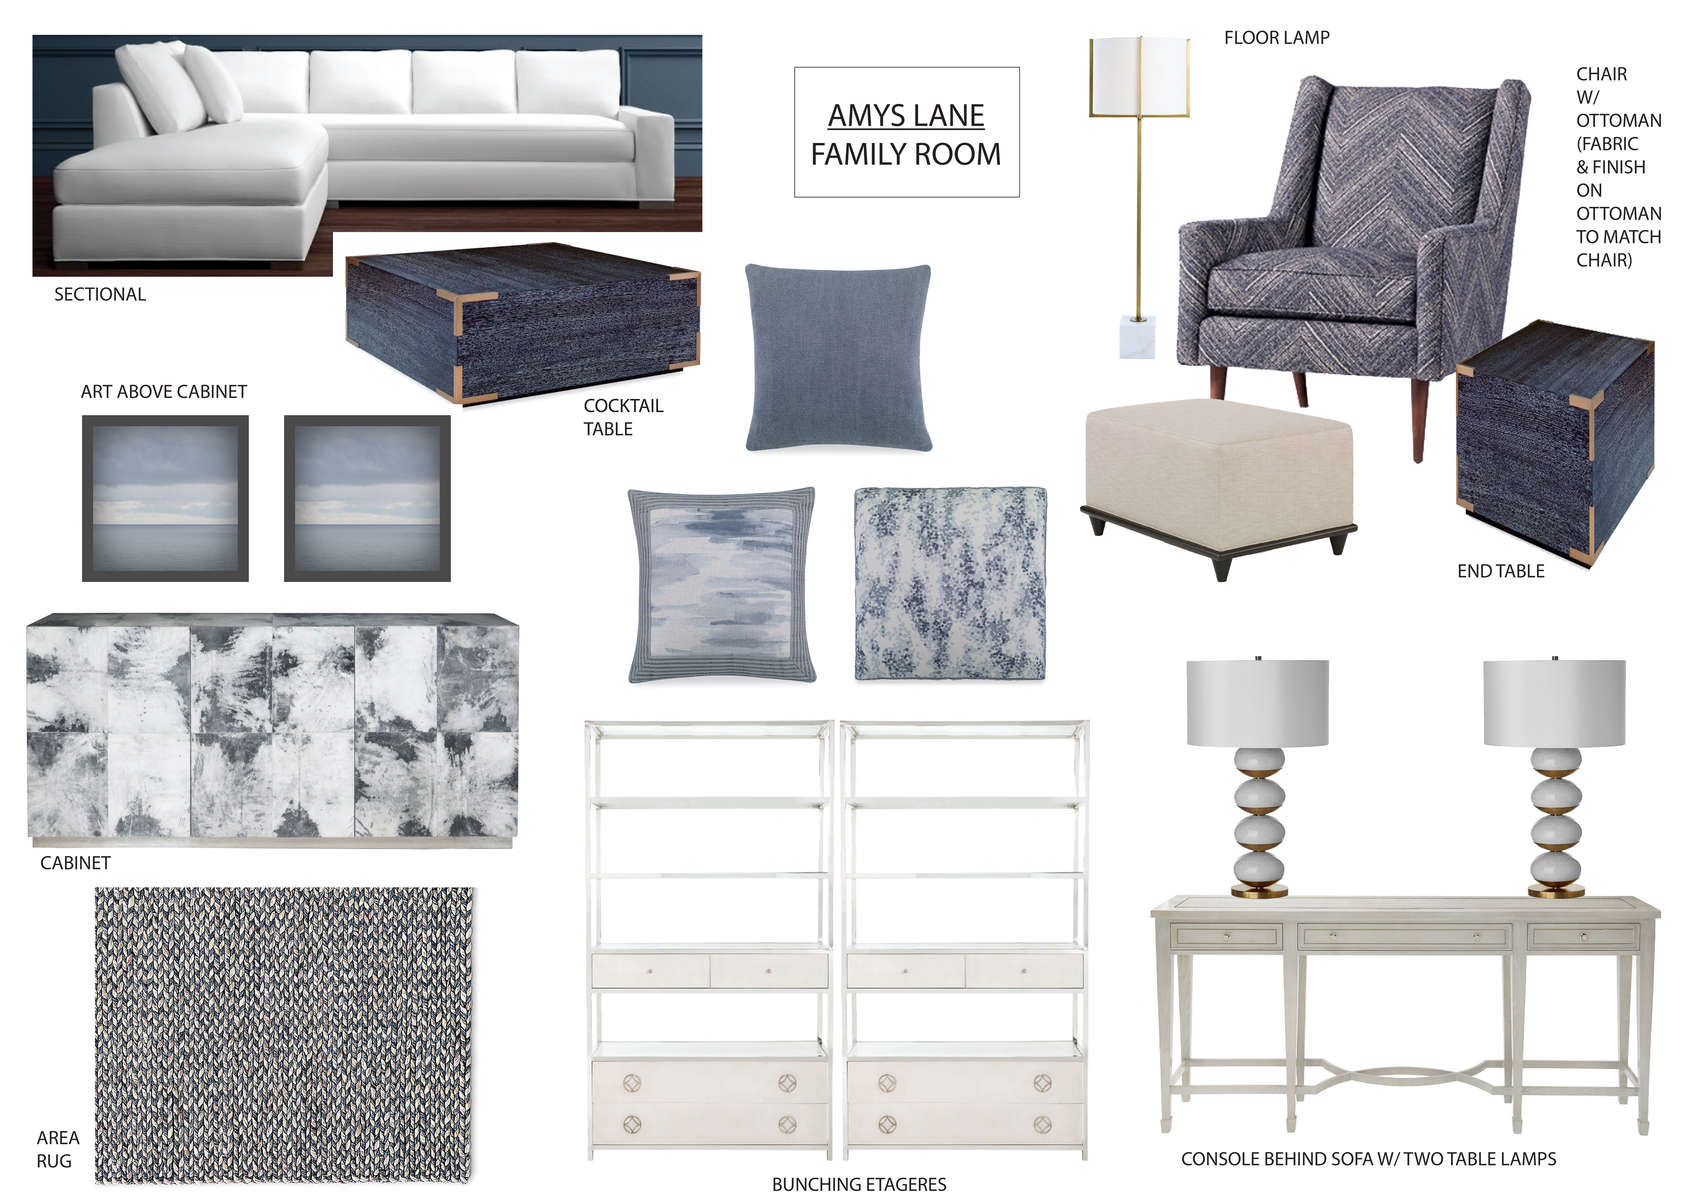 STAGING CONCEPT BOARD FOR THE FAMILY ROOM